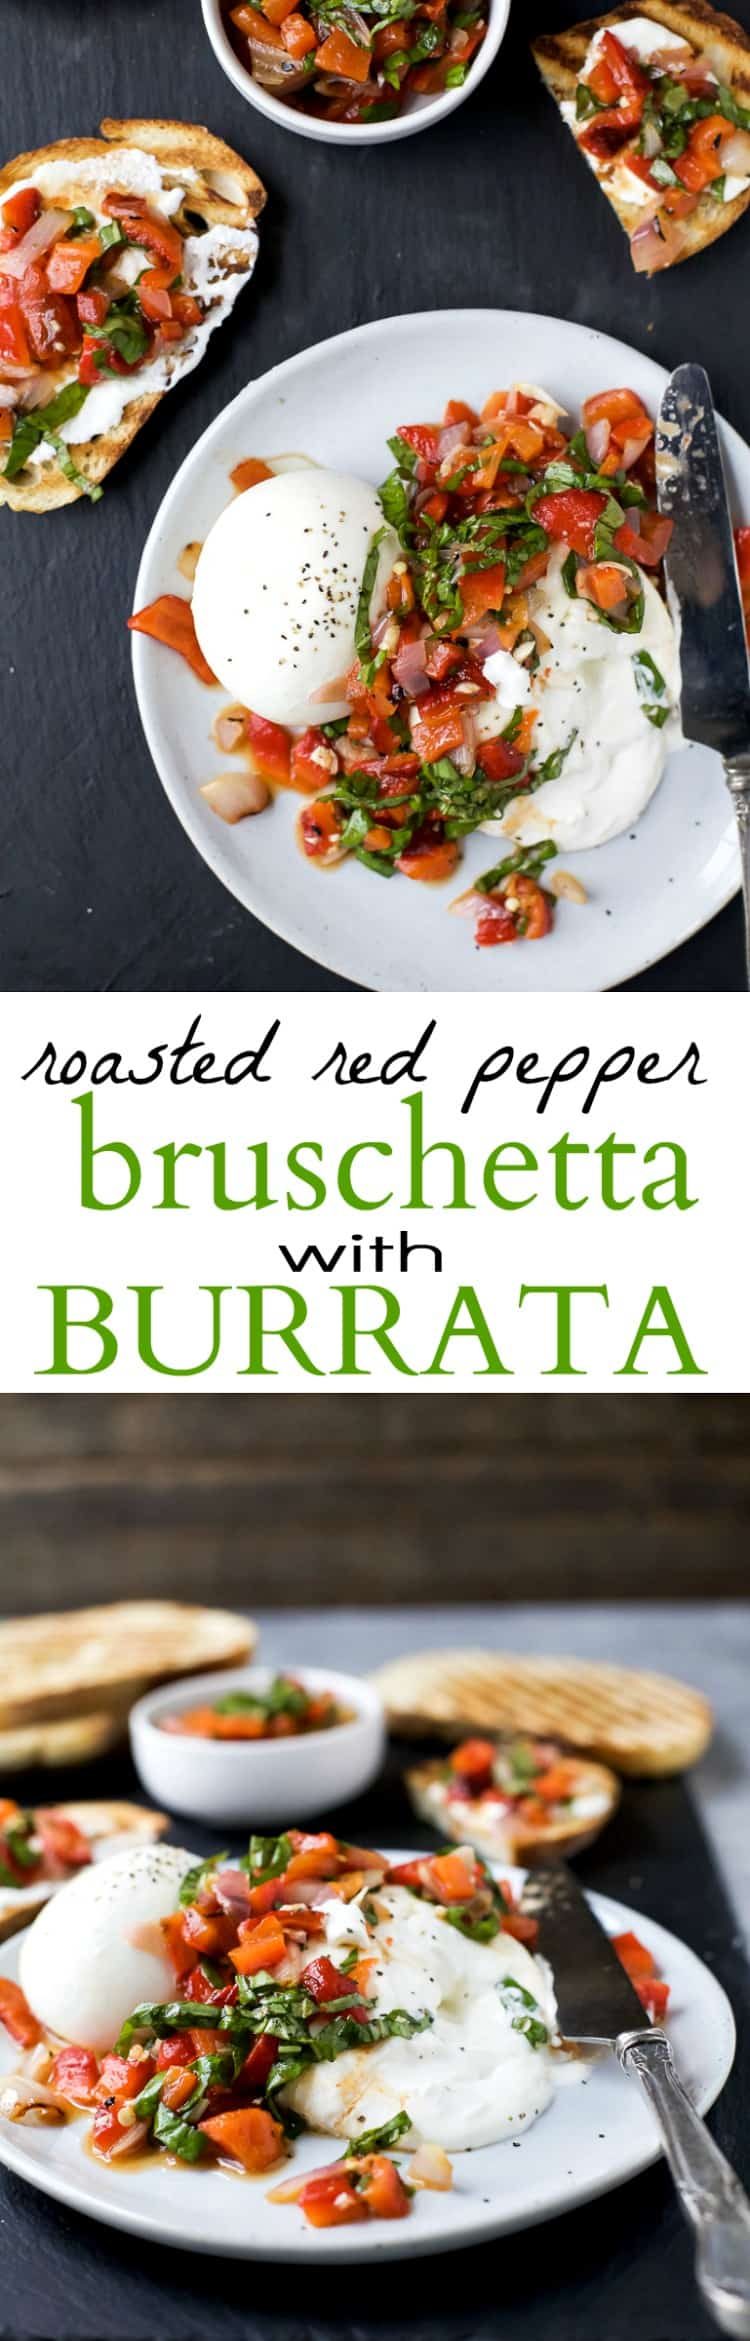 Roasted Red Pepper Bruschetta with Burrata - an easy summer appetizer that's light and fresh! Guaranteed to wow the crowd! I mean, who doesn't like creamy burrata!   grilling recipes